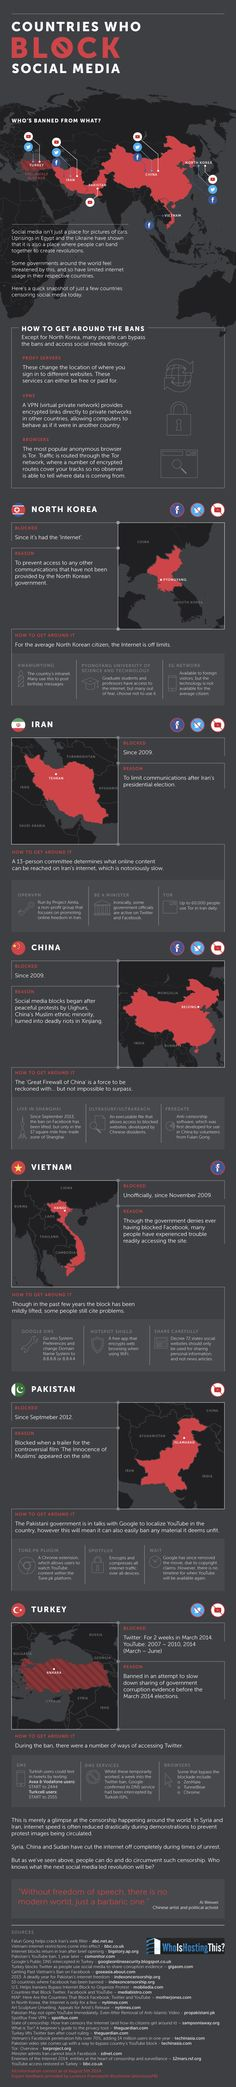 Countries Who Block Social Media - Infographic